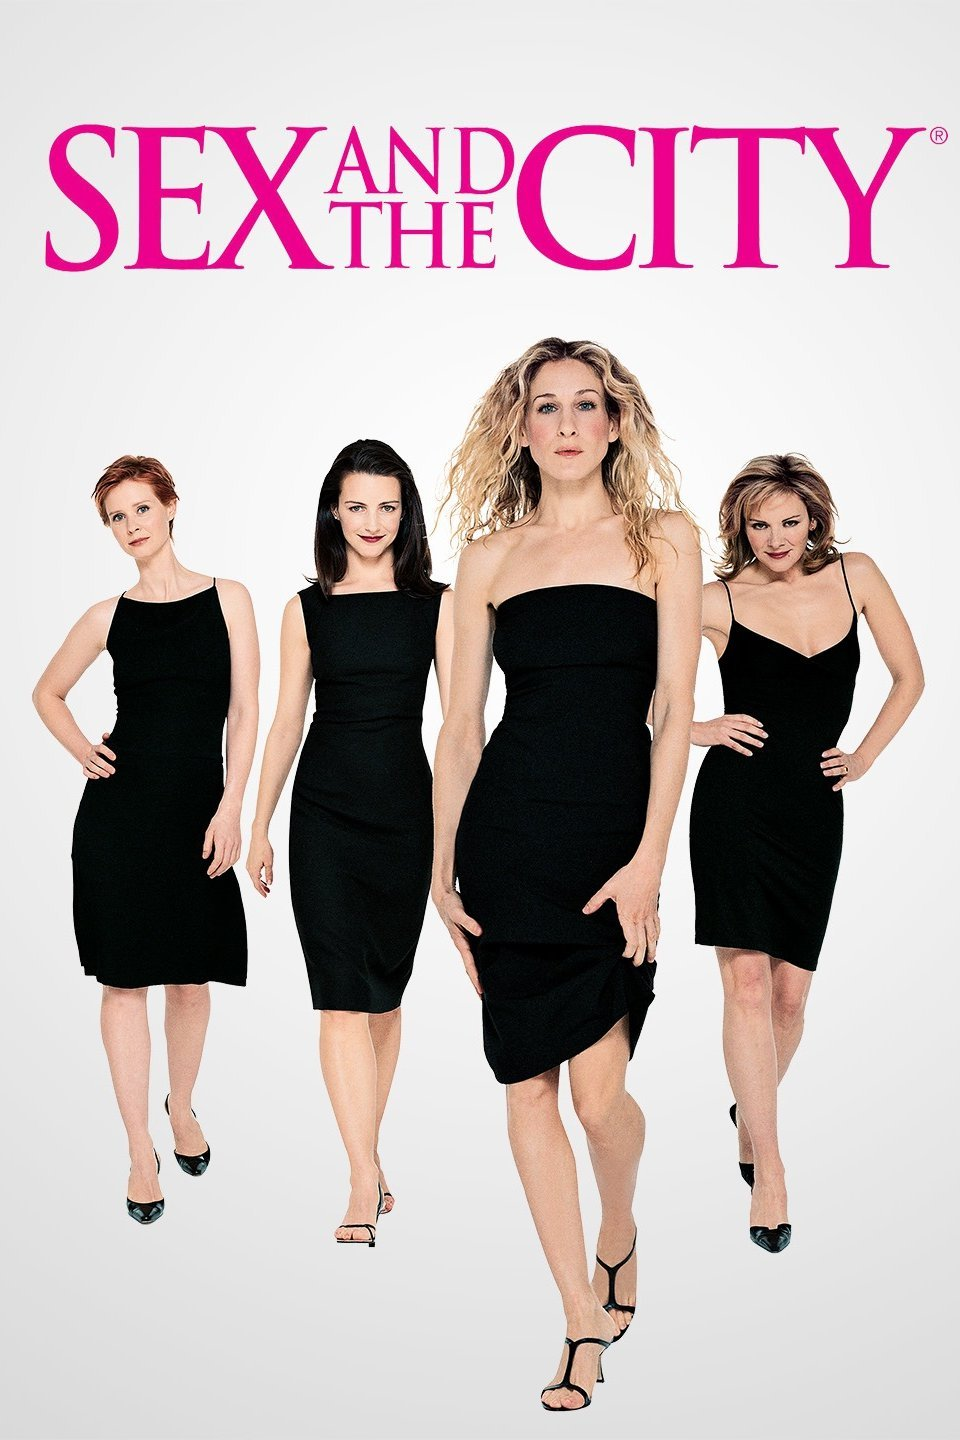 Sex and the city streaming season